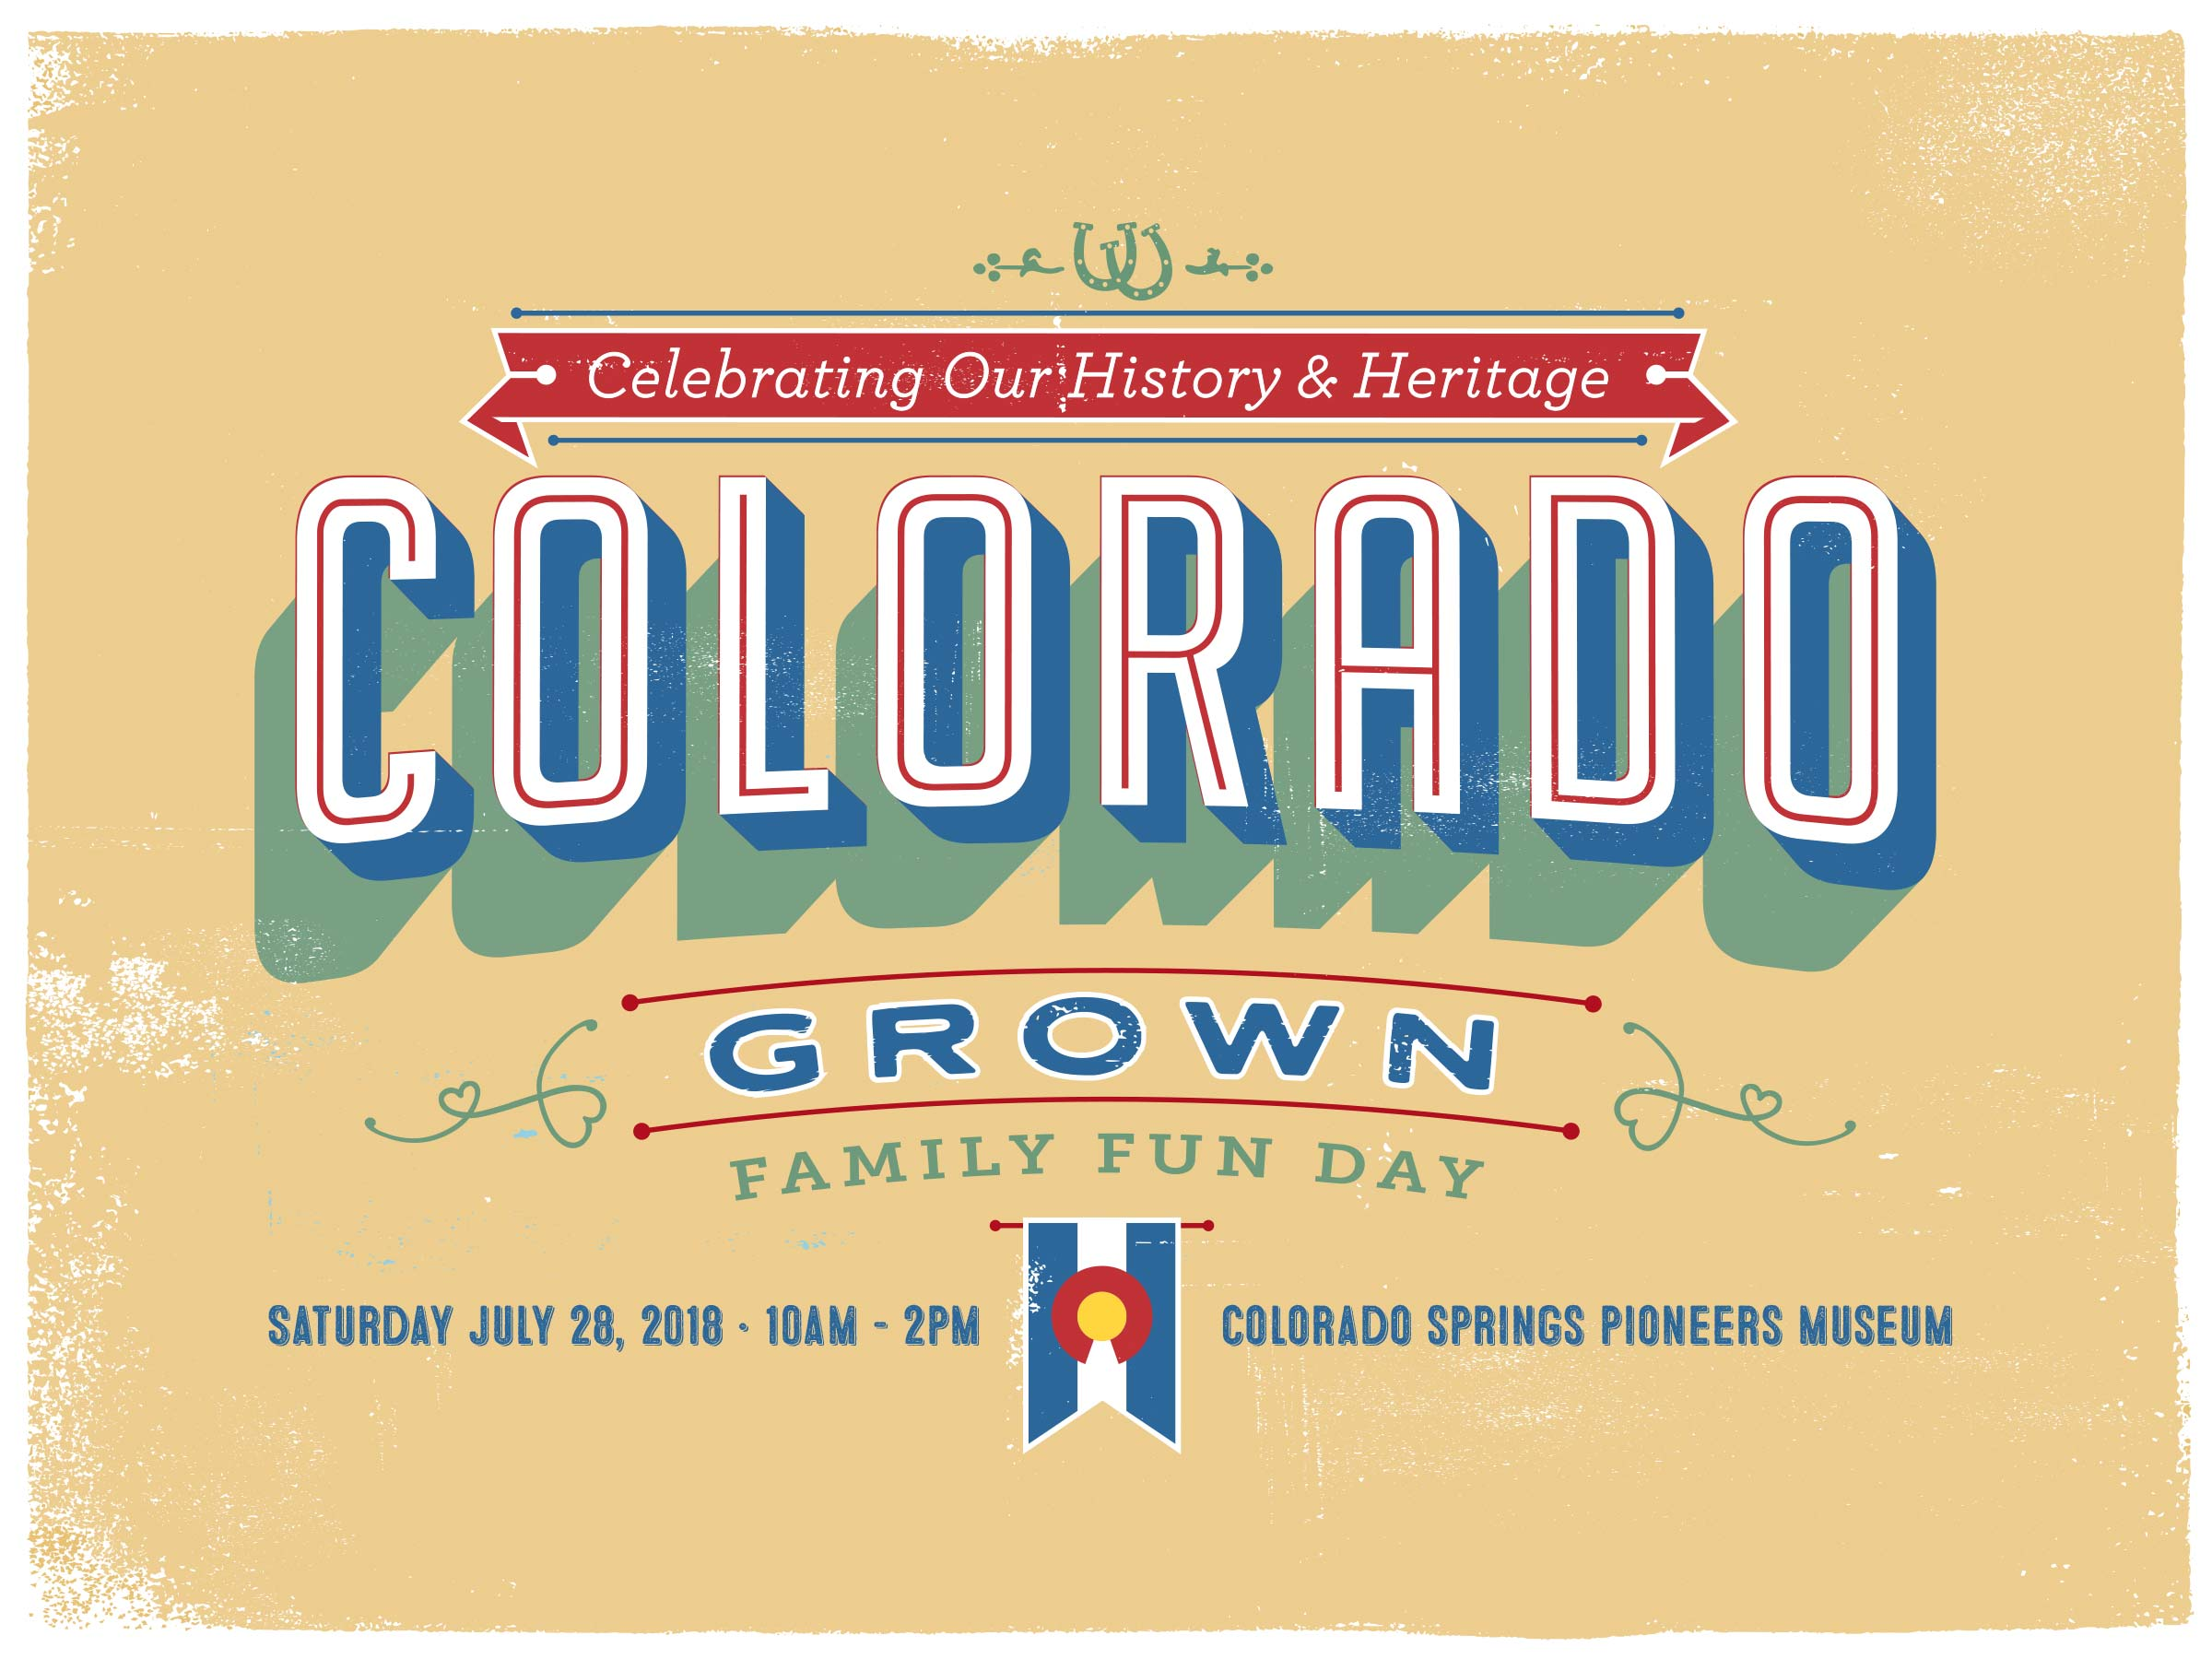 Colorado grown family fun day 2018 colorado springs pioneers museum celebrate colorados 142nd birthday and discover local history and heritage through tours activity booths hands on history stations local history malvernweather Choice Image